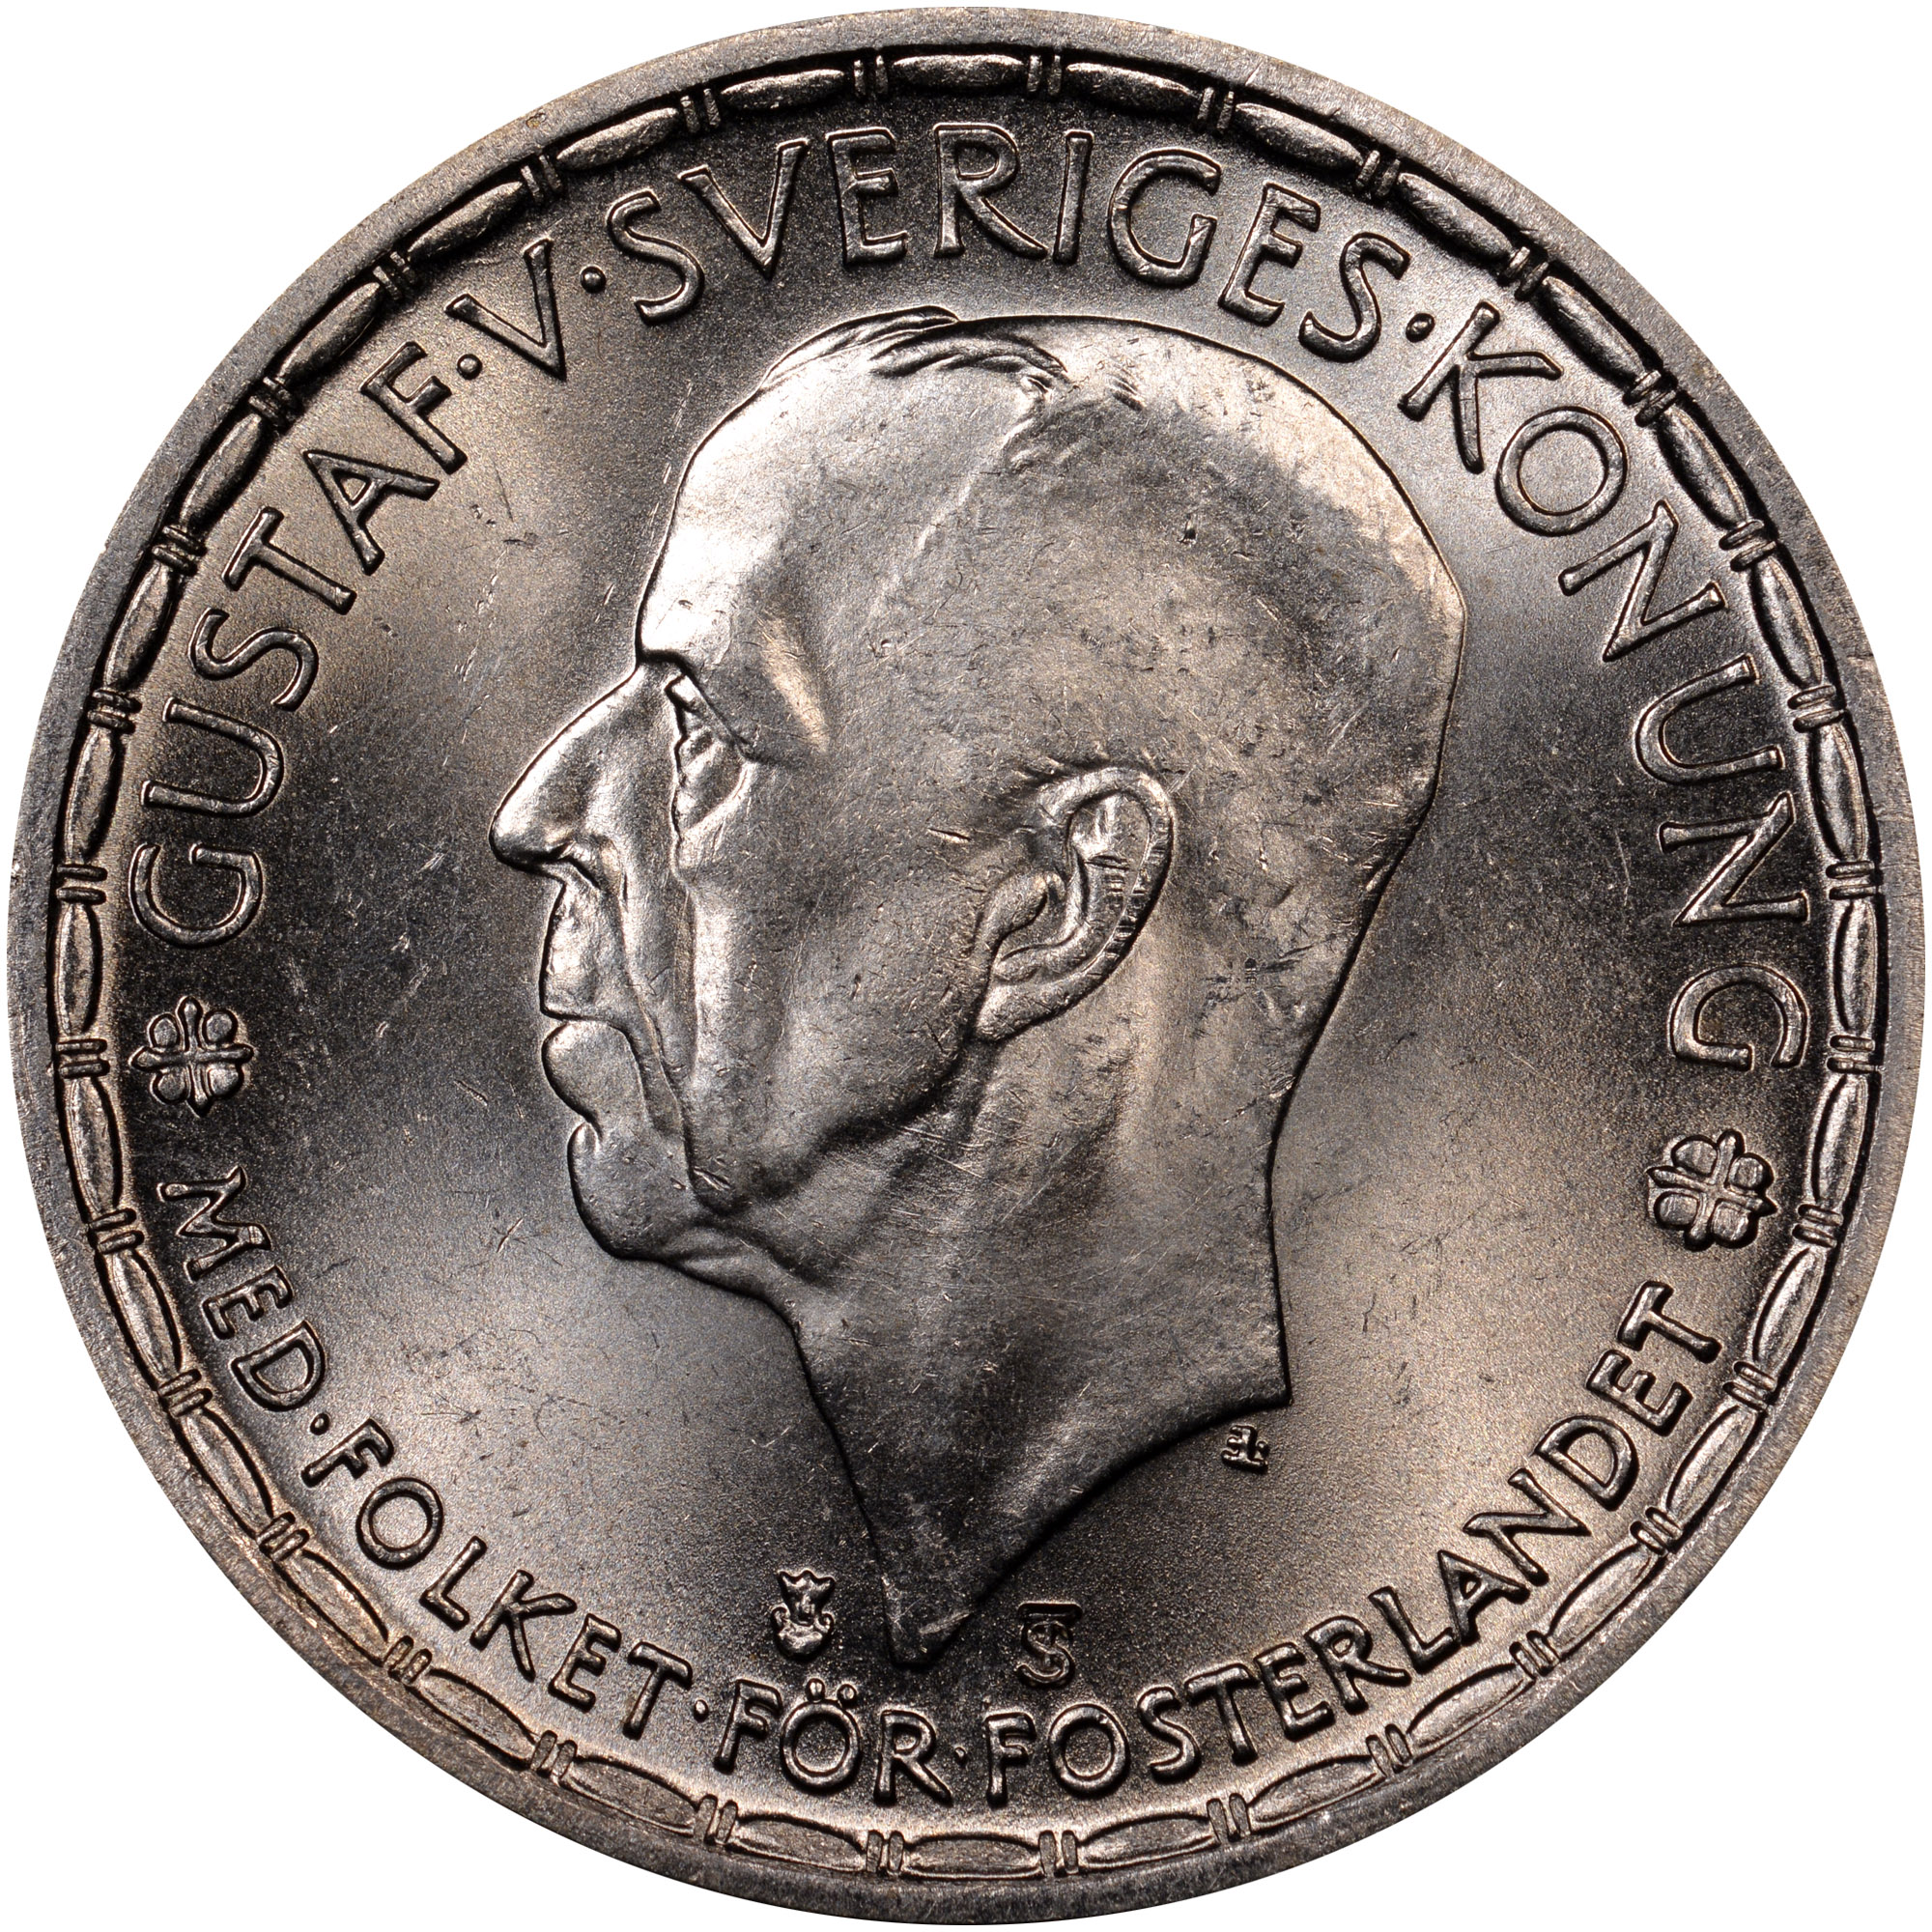 Sweden 2 Kronor KM 815 Prices & Values | NGC